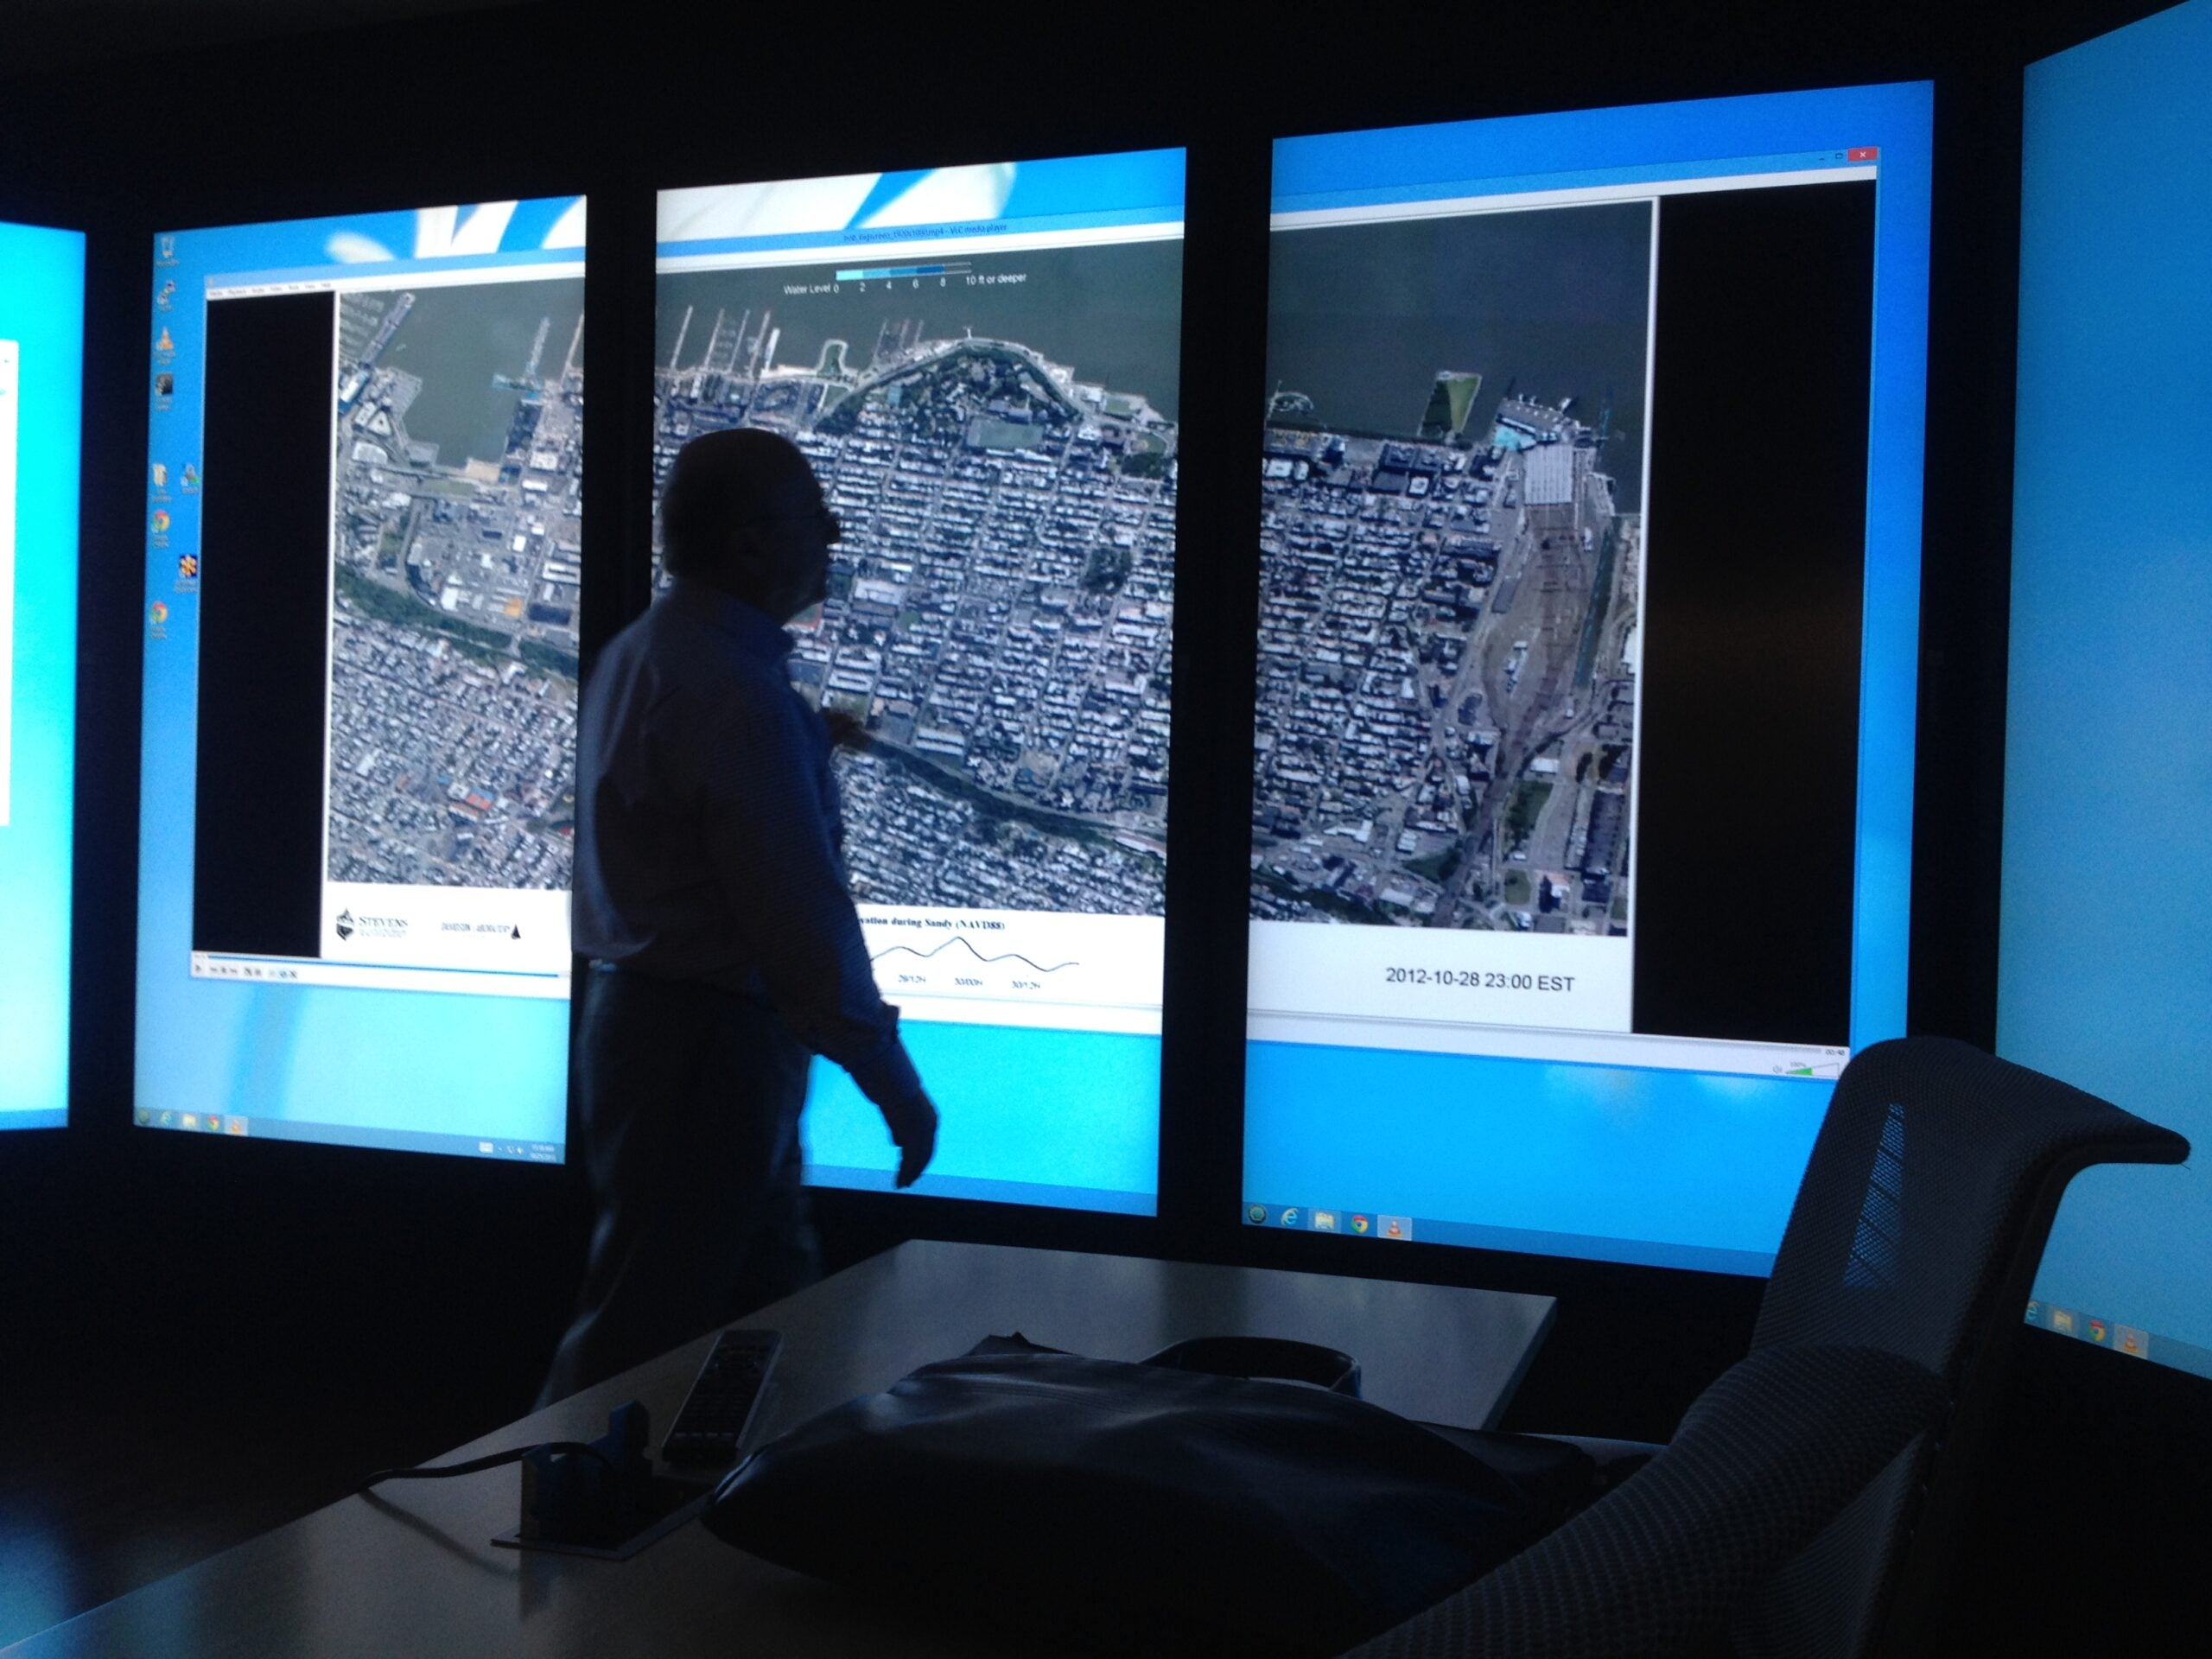 Computer Flood Models Could Save Cities, But They're Not There Yet